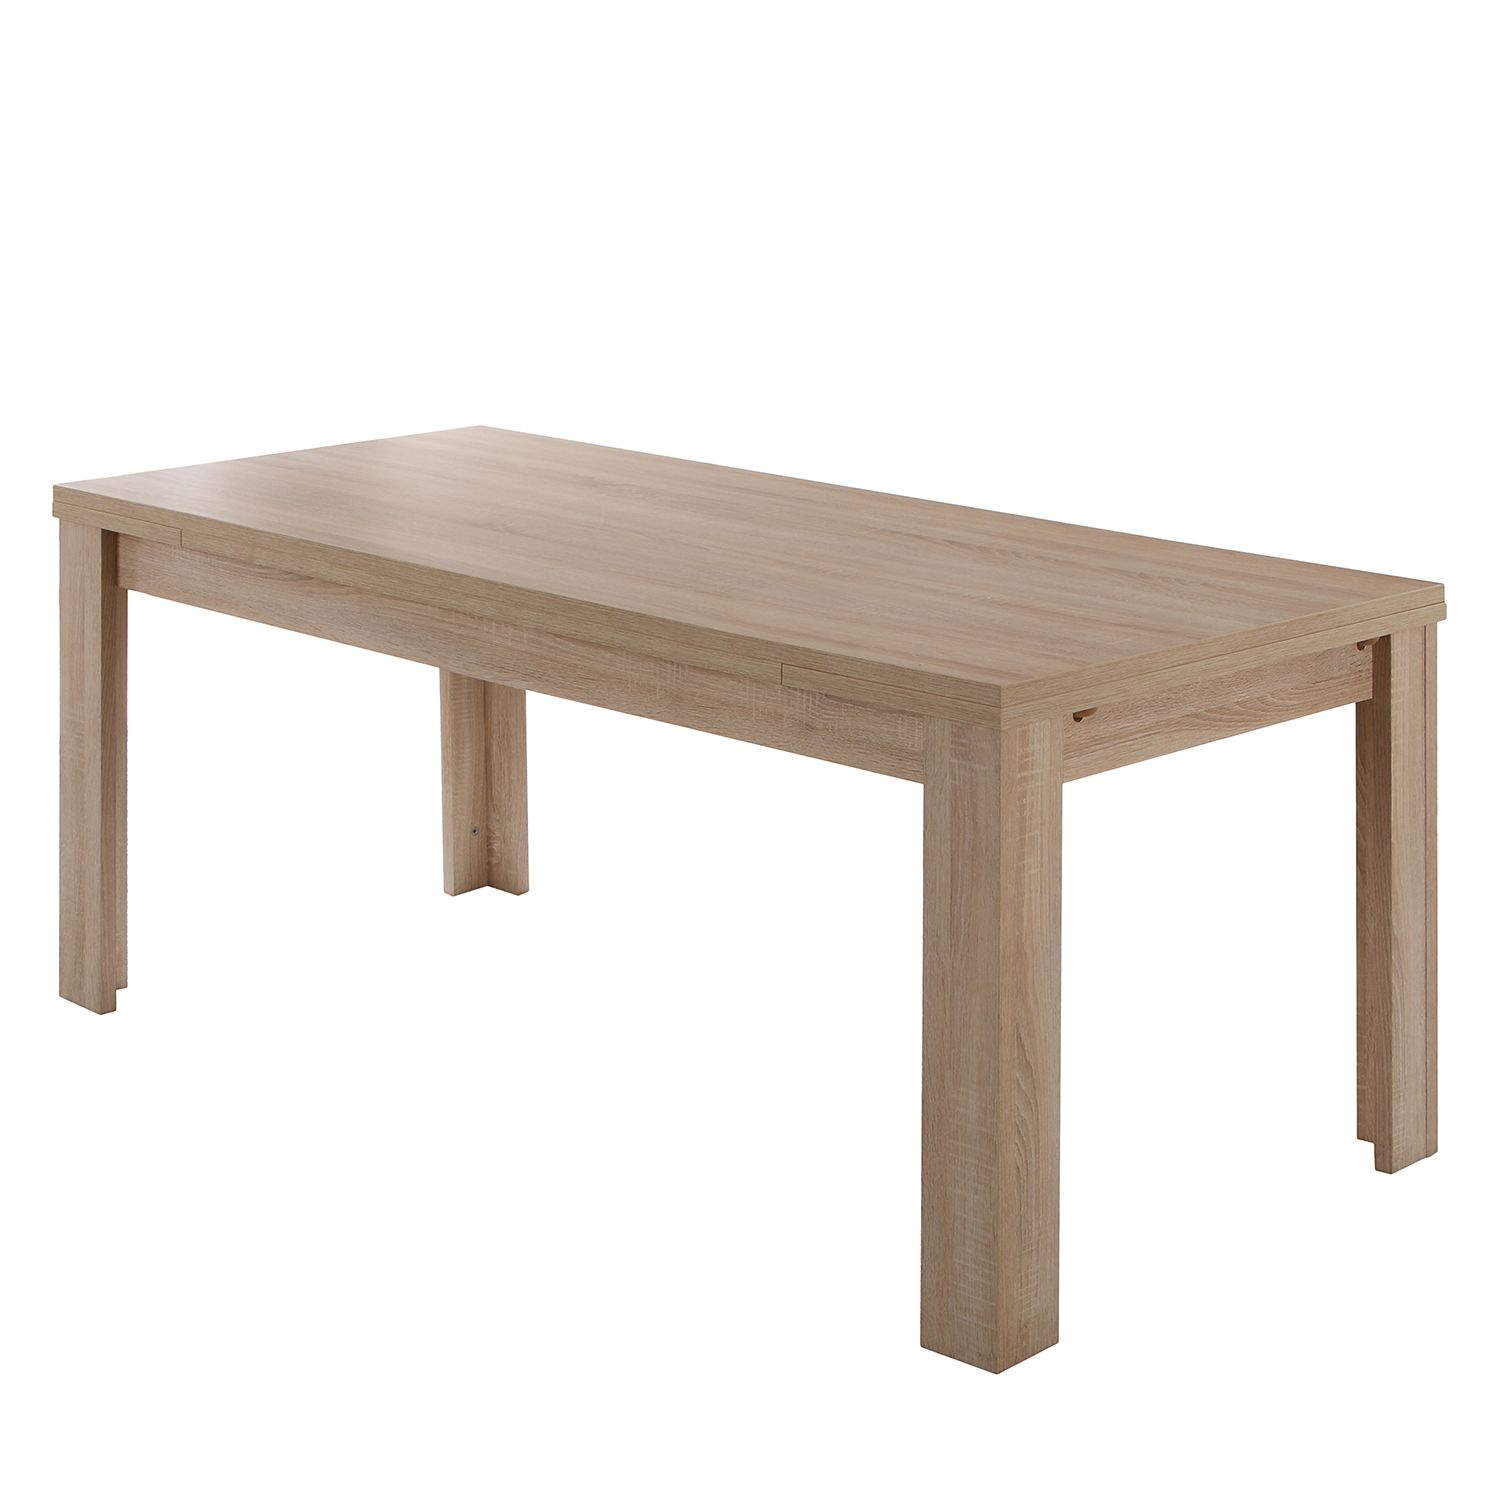 Table manger leaf avec rallonges for Table a manger 160 cm avec rallonge